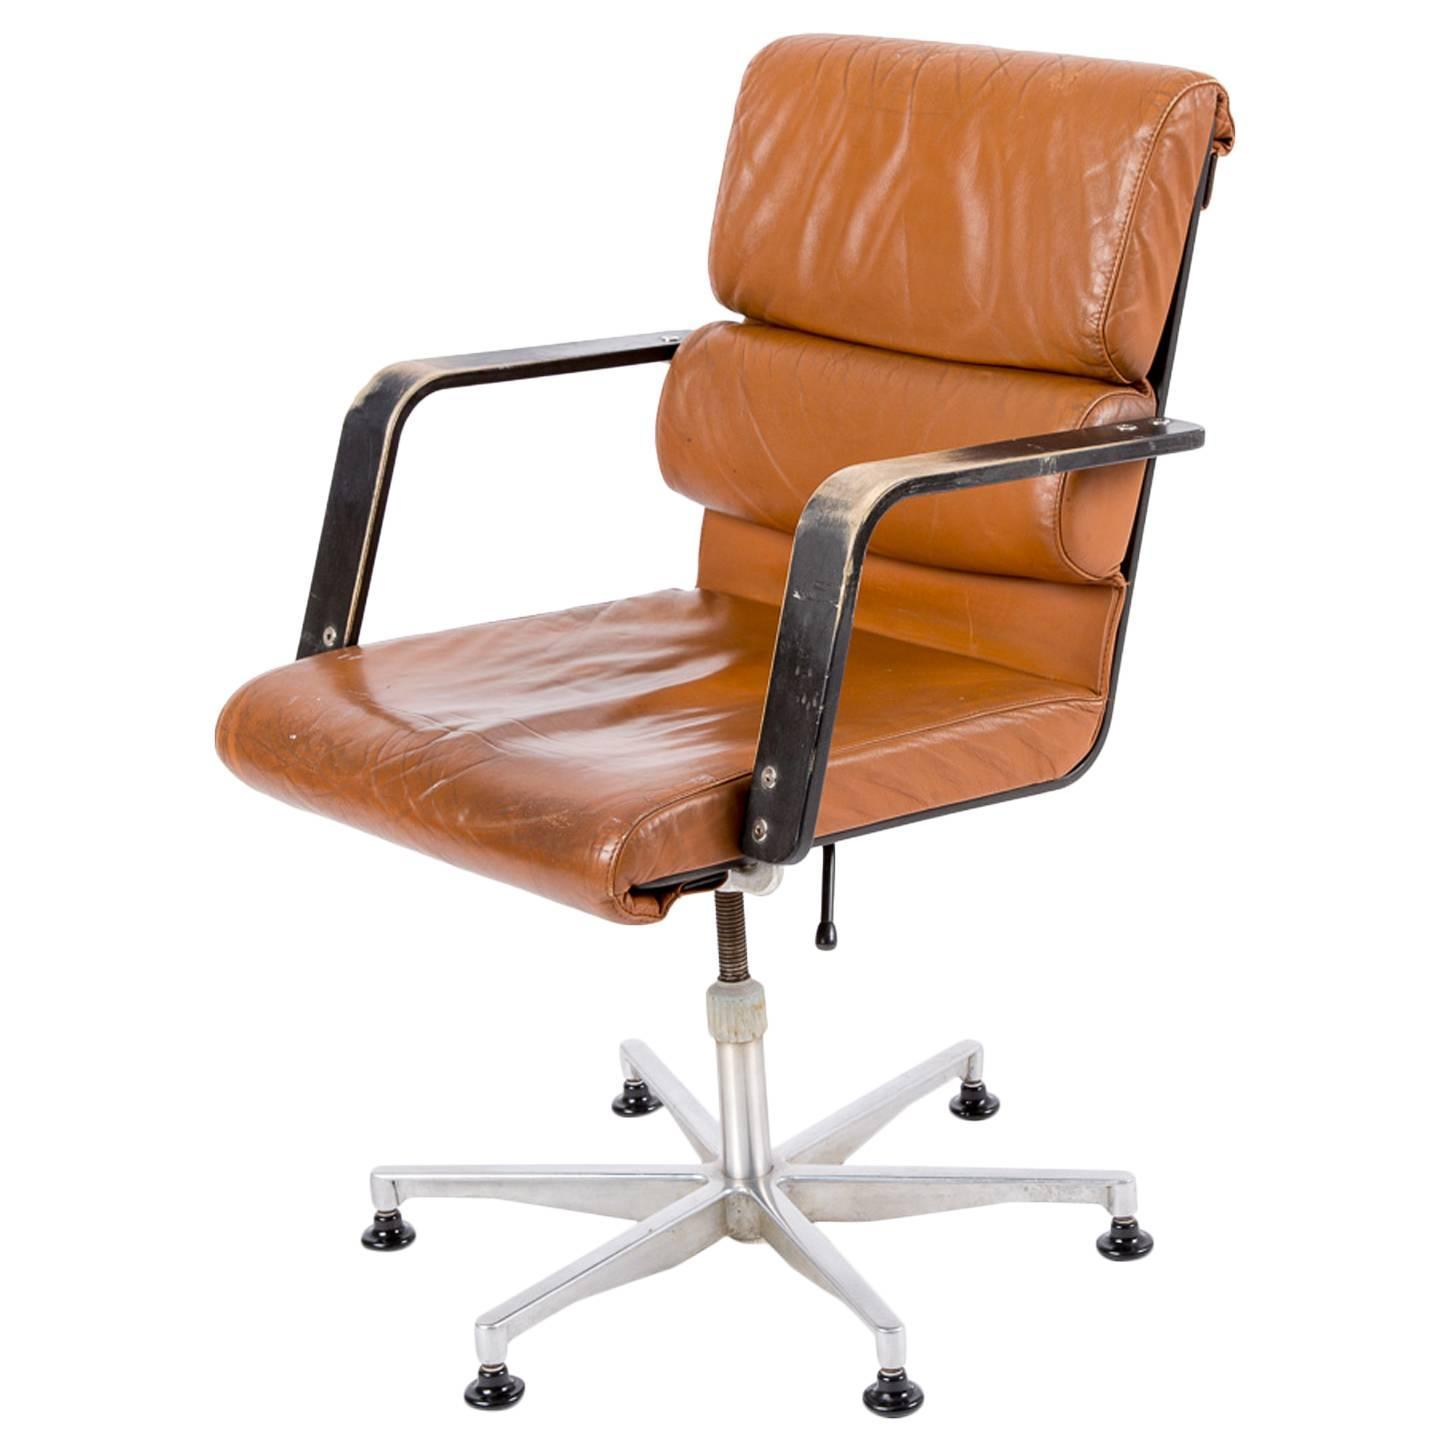 Riveting Plaano Yrjo Kukkapuro Office Finland At Office Chairs Australia Office Chairs South Africa houzz 01 Modern Office Chair